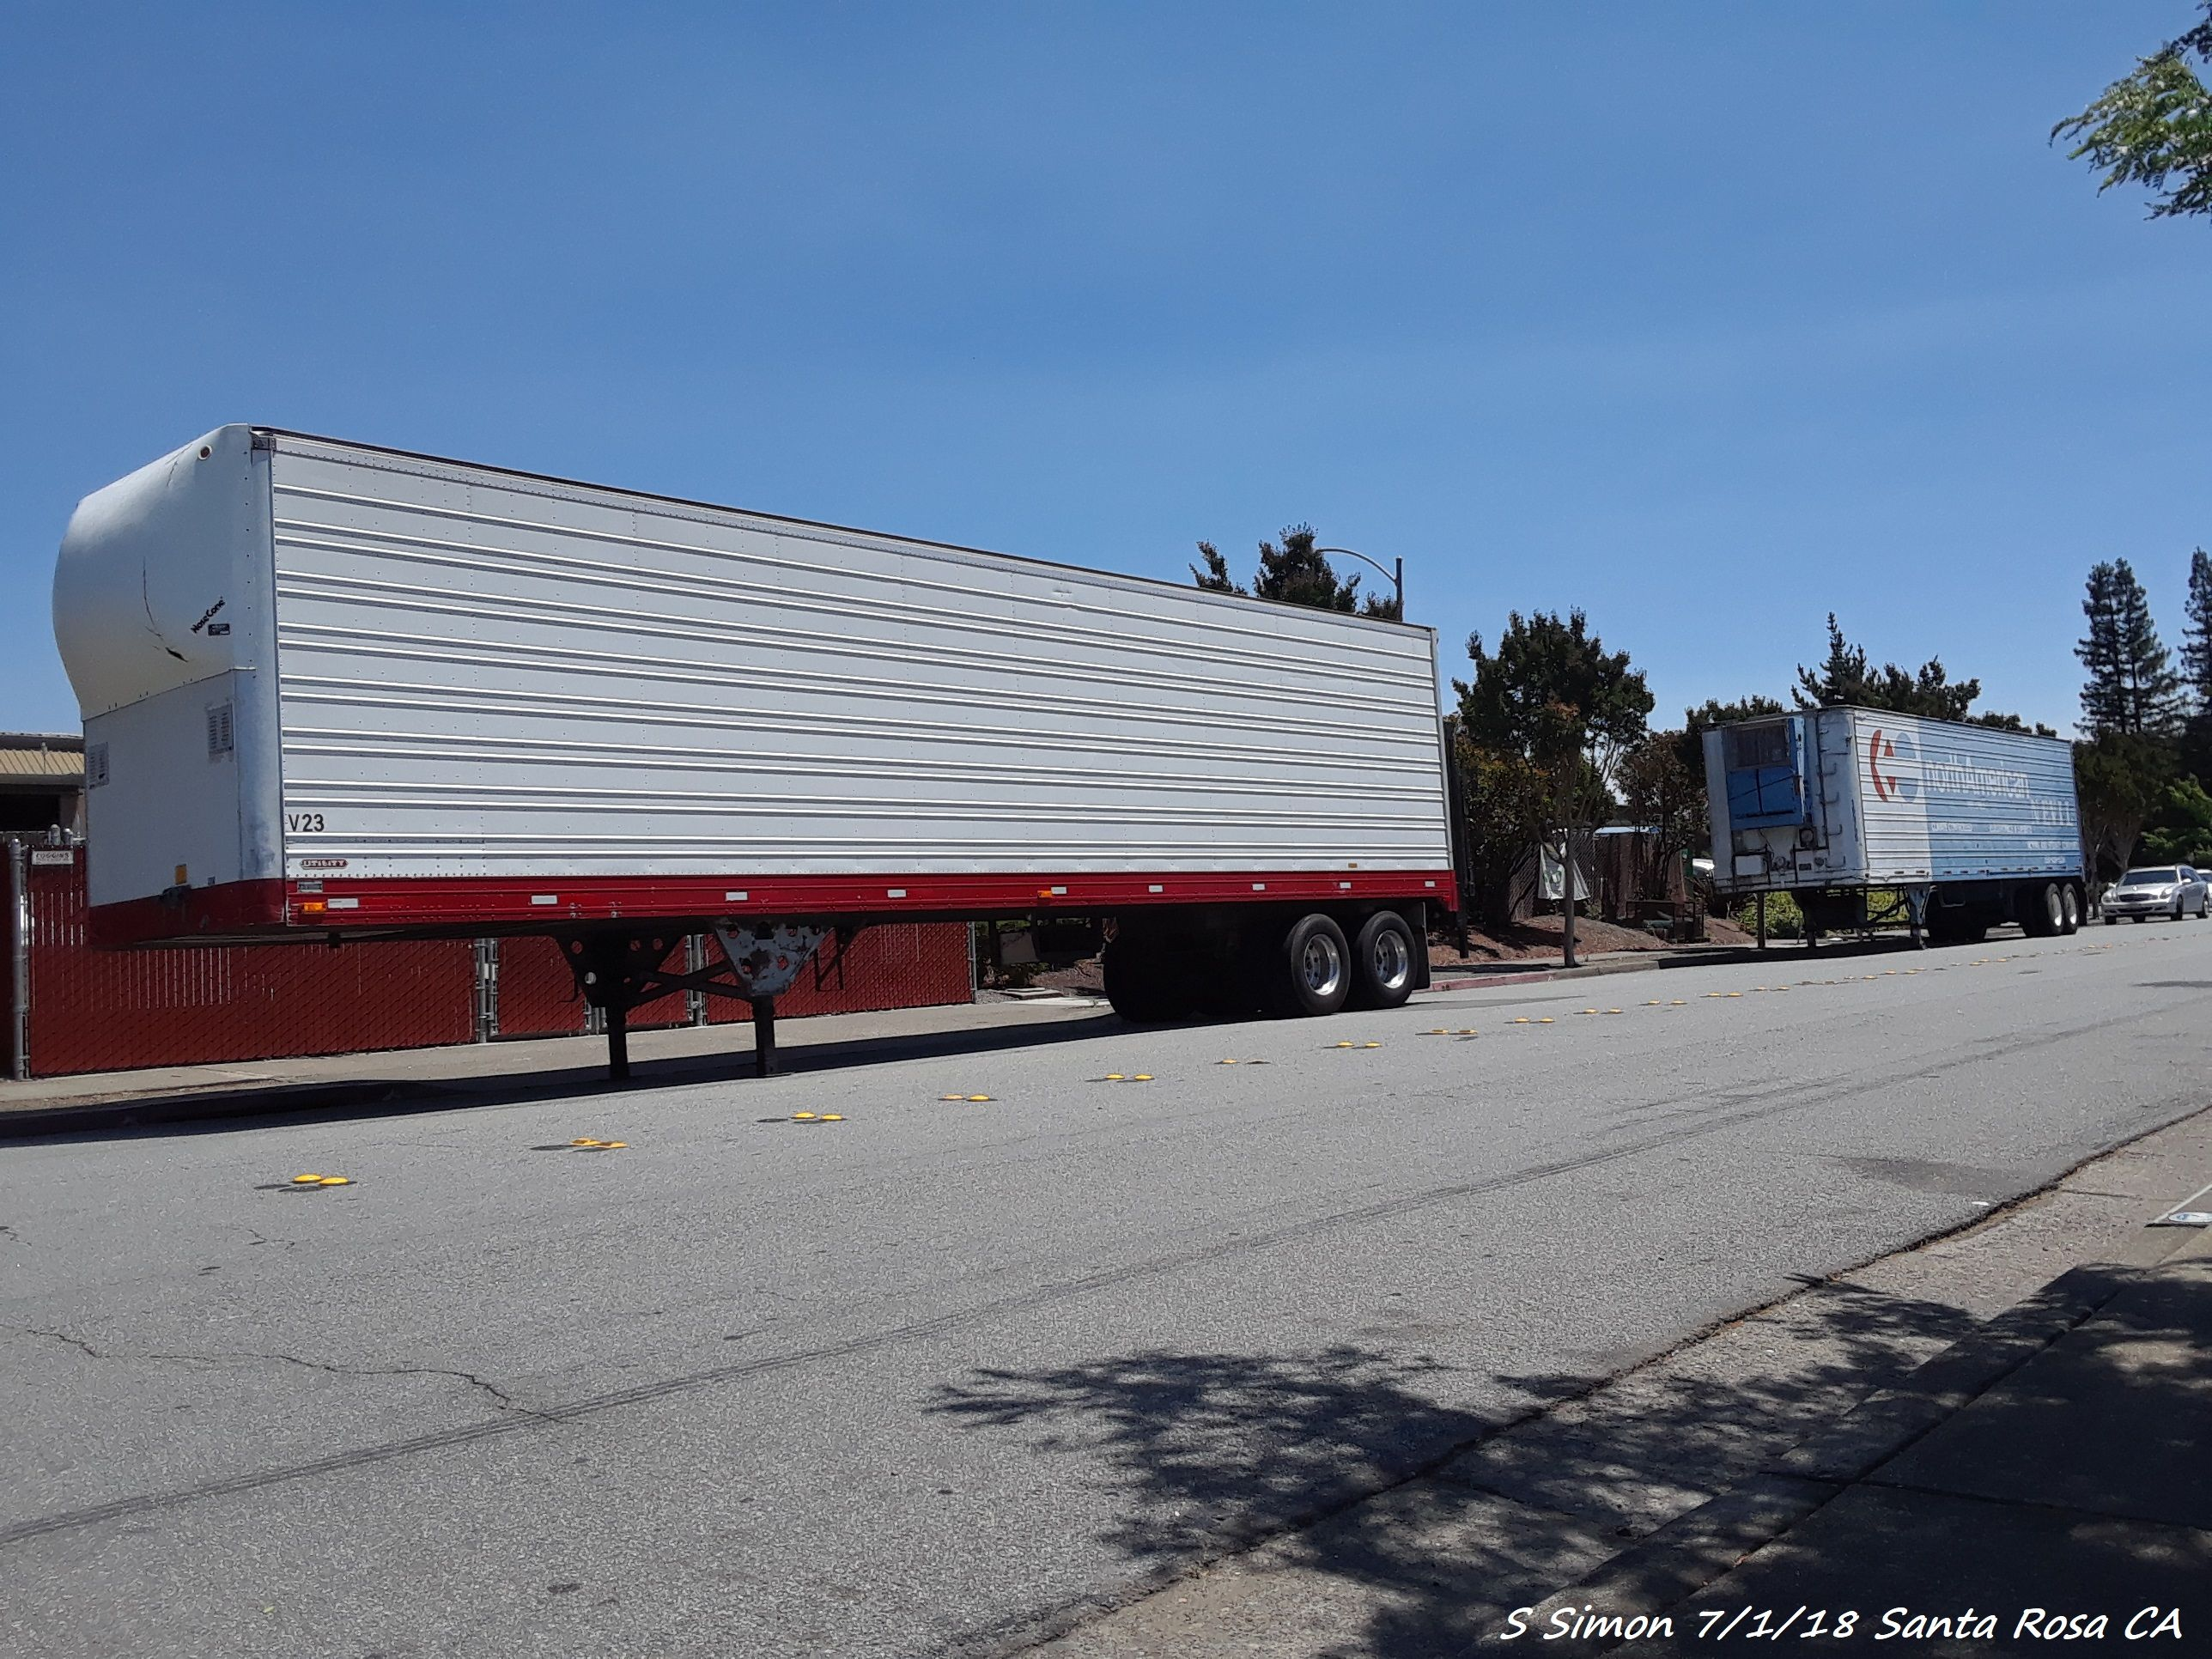 1990 Utility 42 9 Ft Trailer Ahead Of 1979 Great Dane Trailer Old